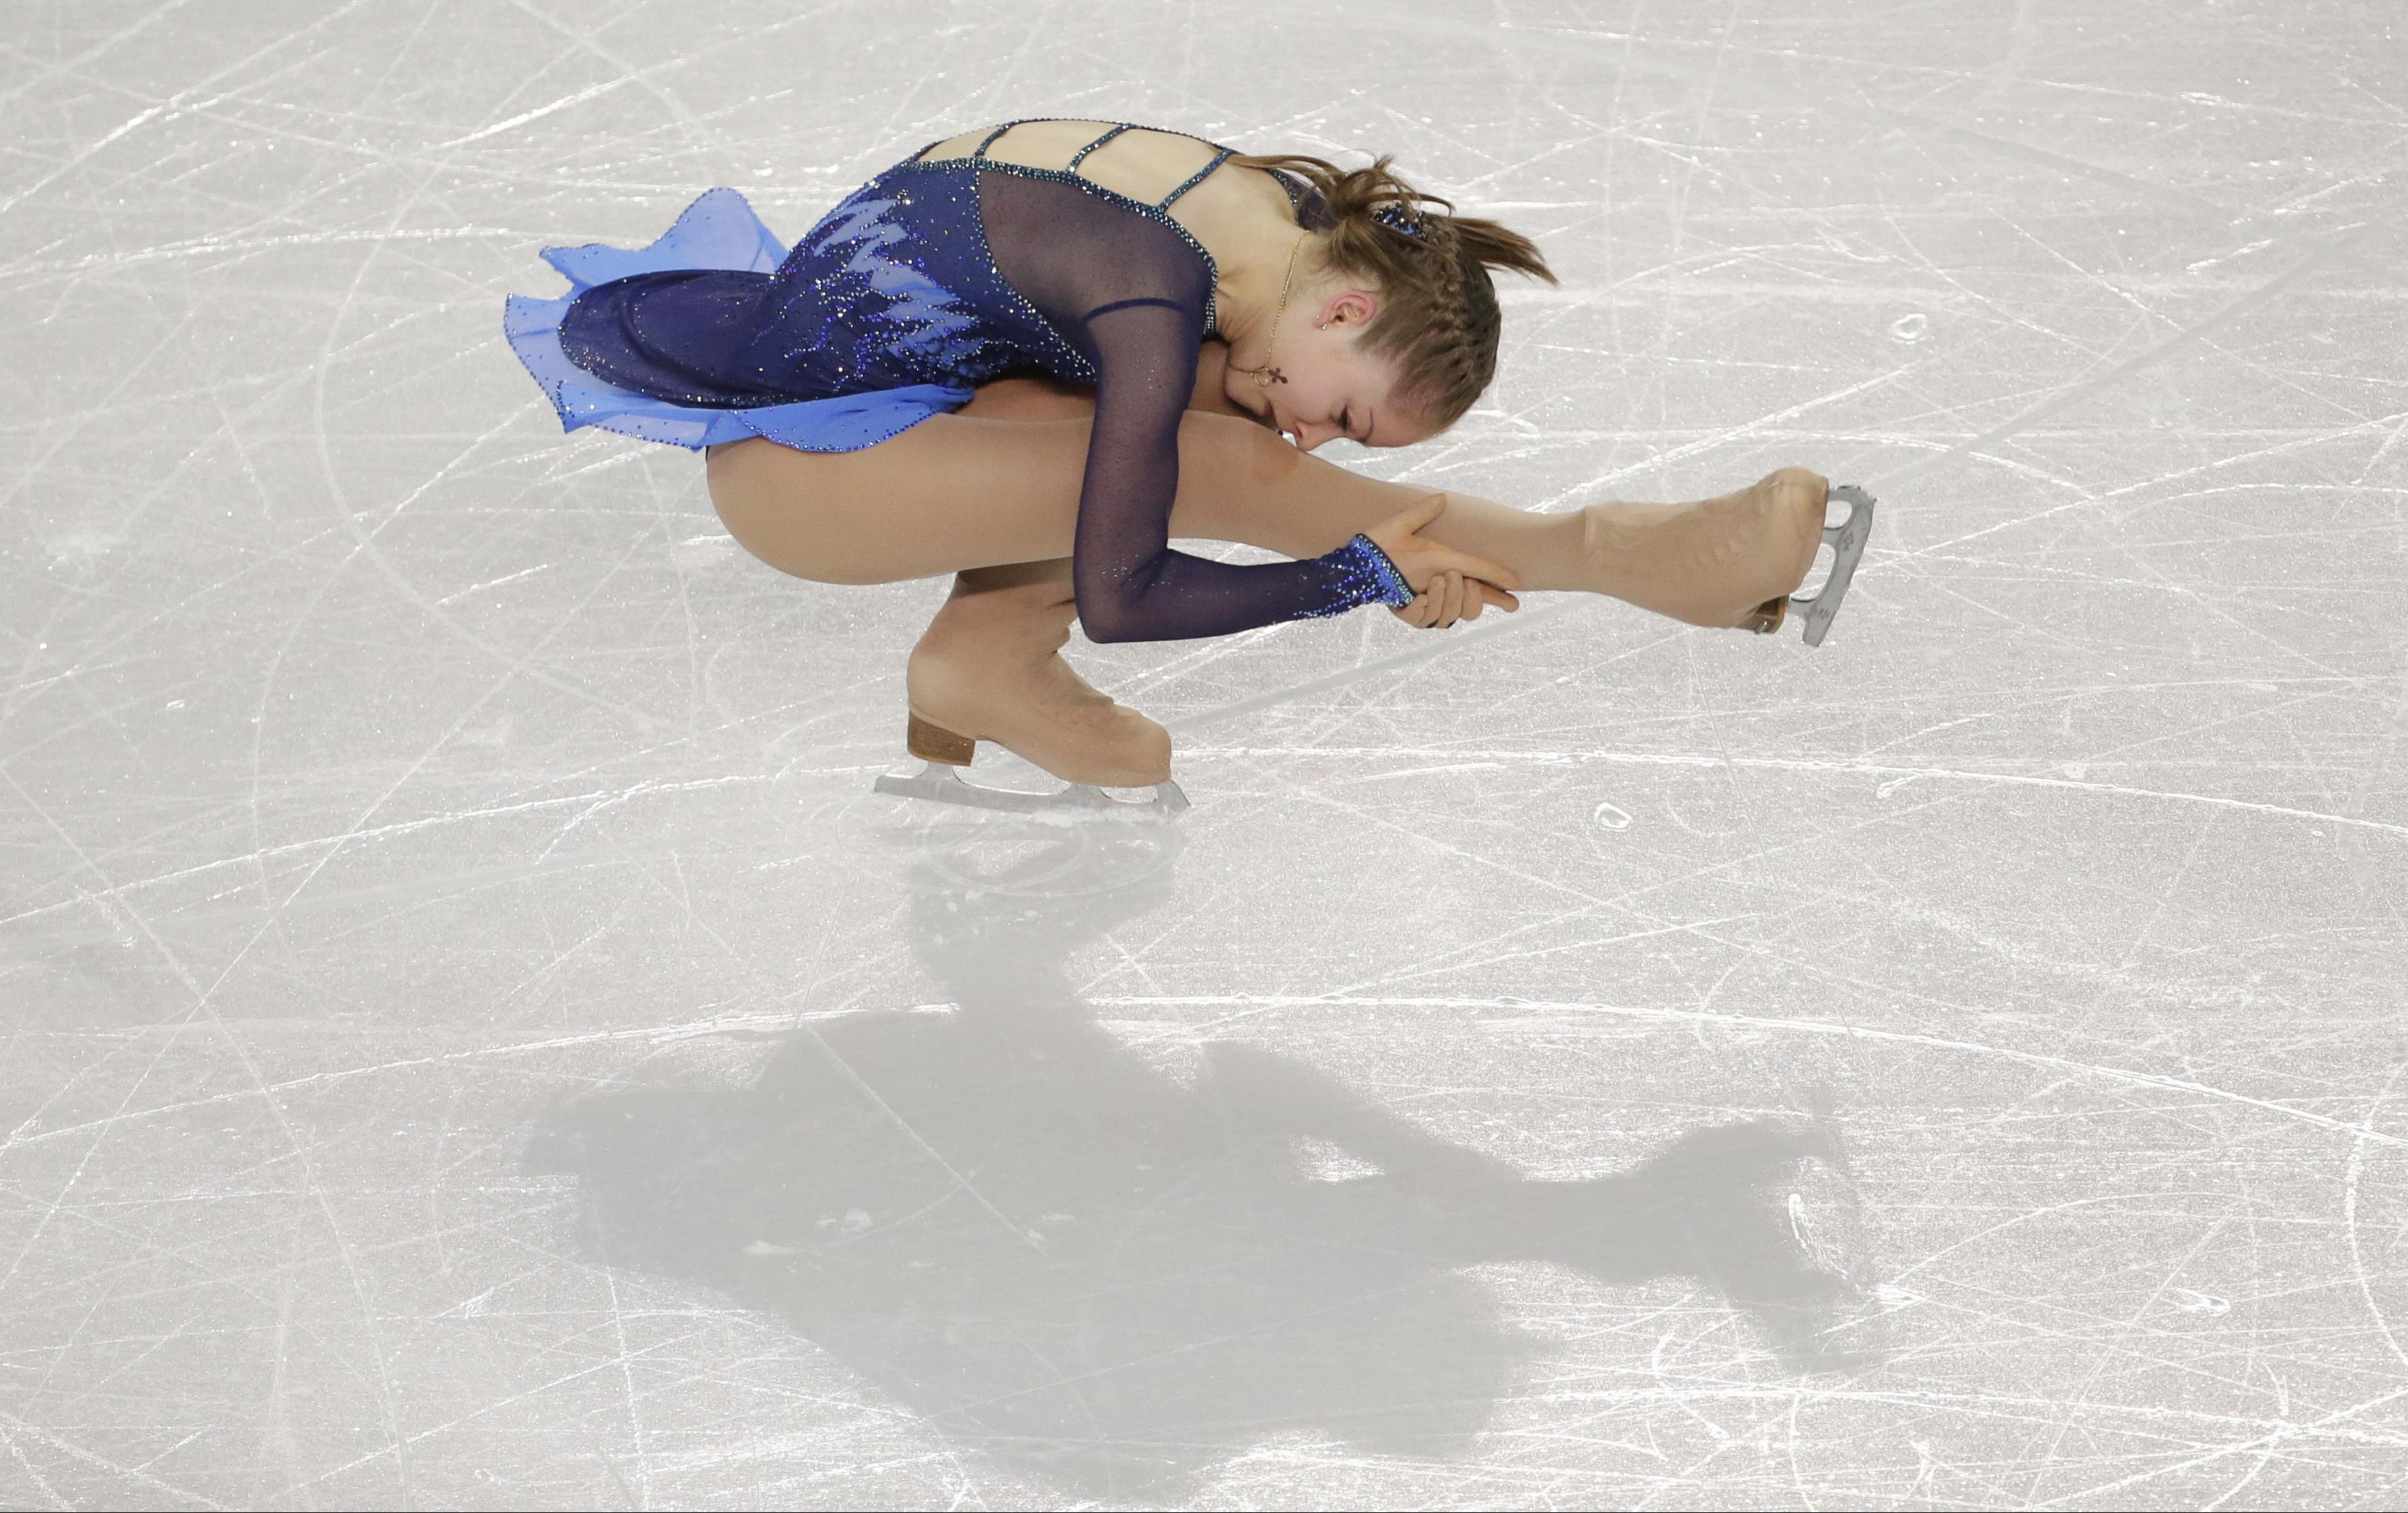 Yulia Lipnitskaya explained the reasons for her departure from the sport 13.09.2017 98